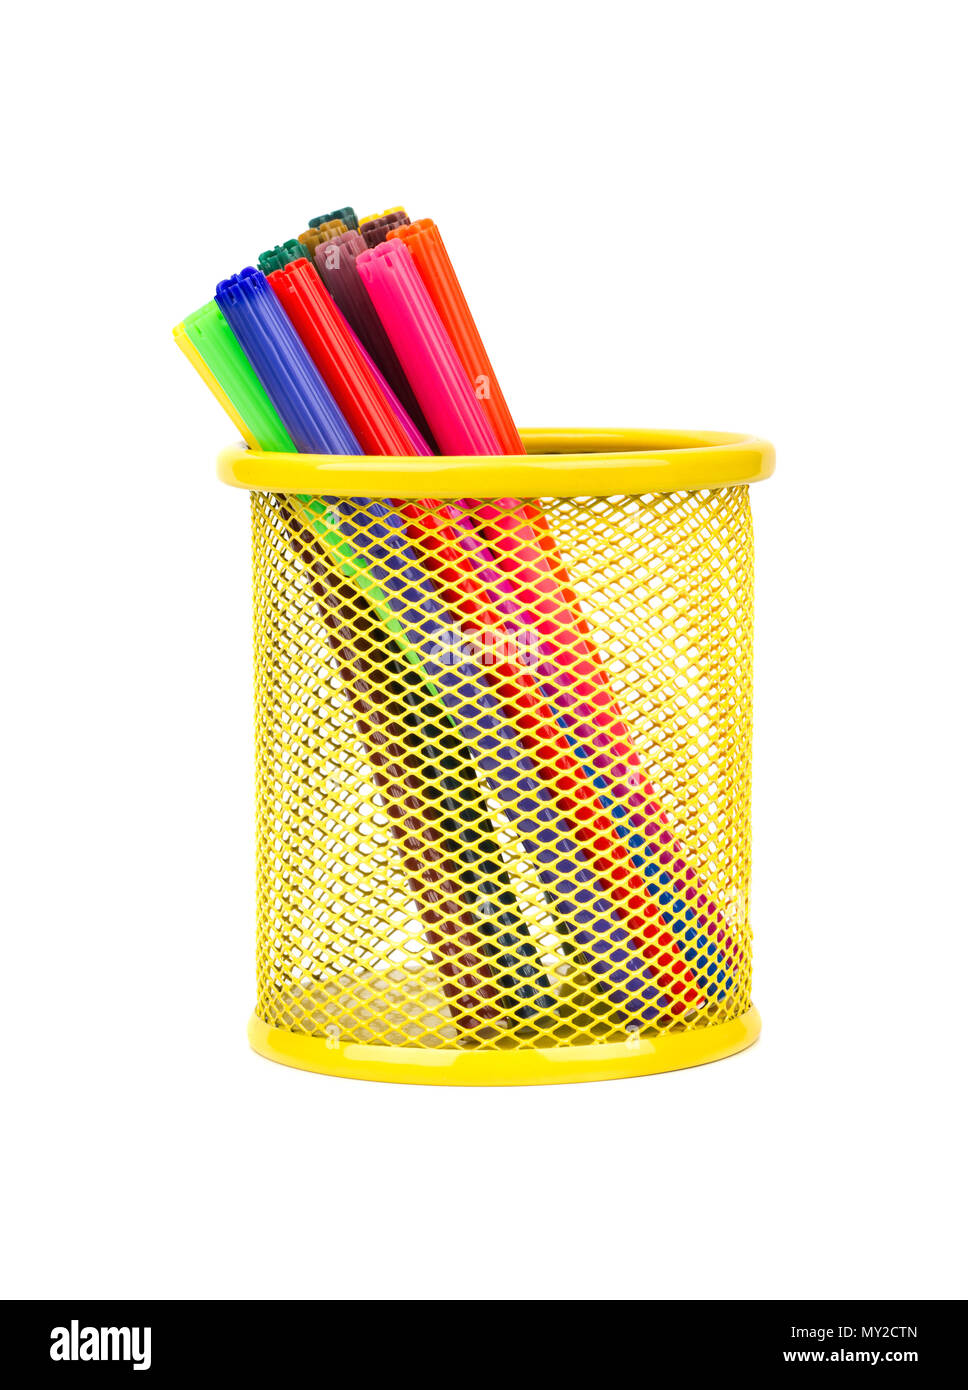 Multicolored markers in yellow shaped metal basket isolated on white background - Stock Image